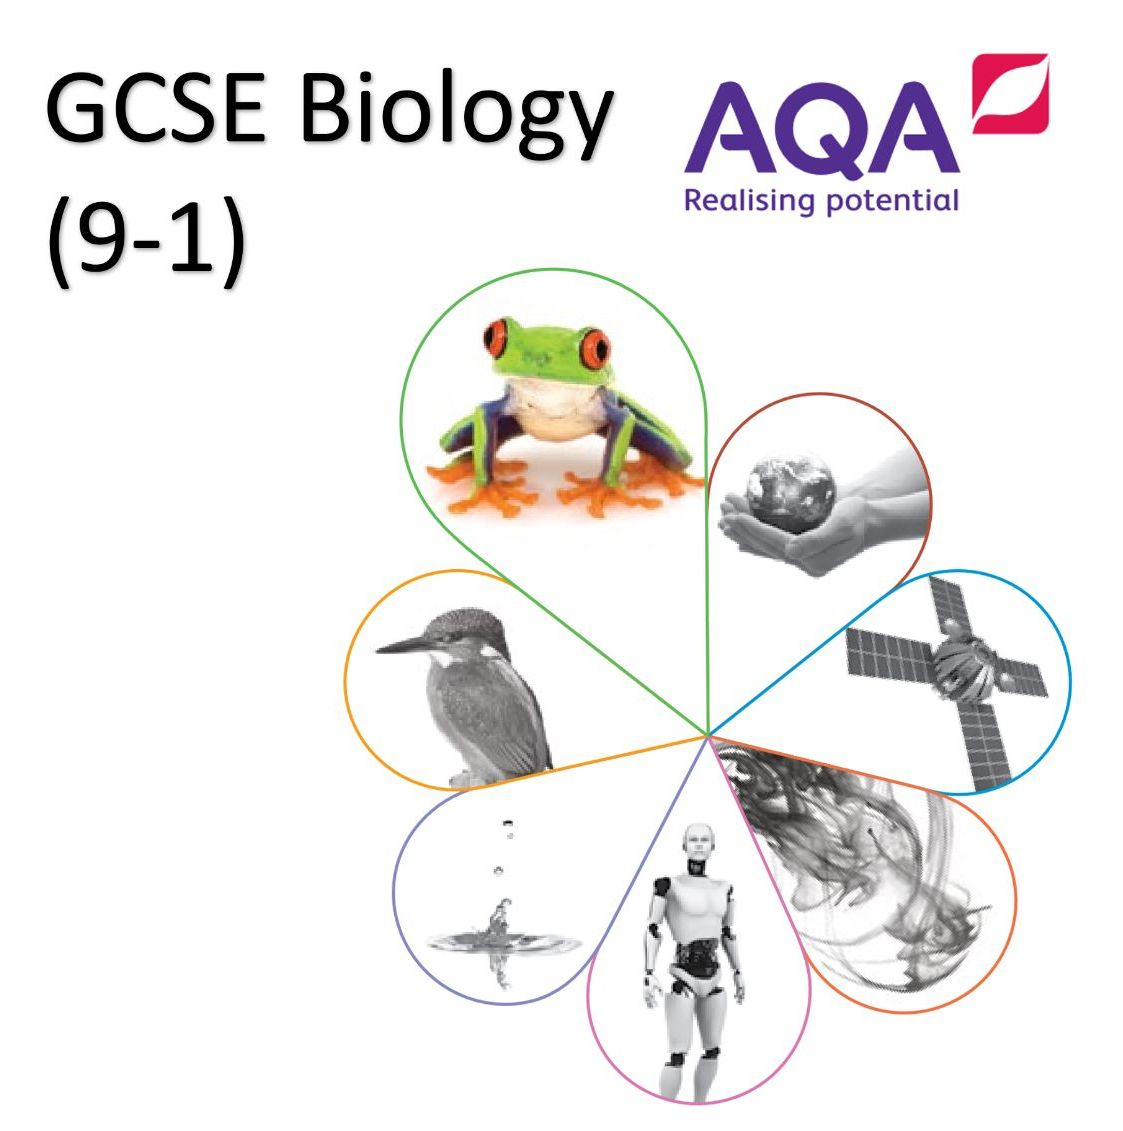 AQA GCSE Biology (9-1) Paper 1 Double Science Revision Summary Sheets